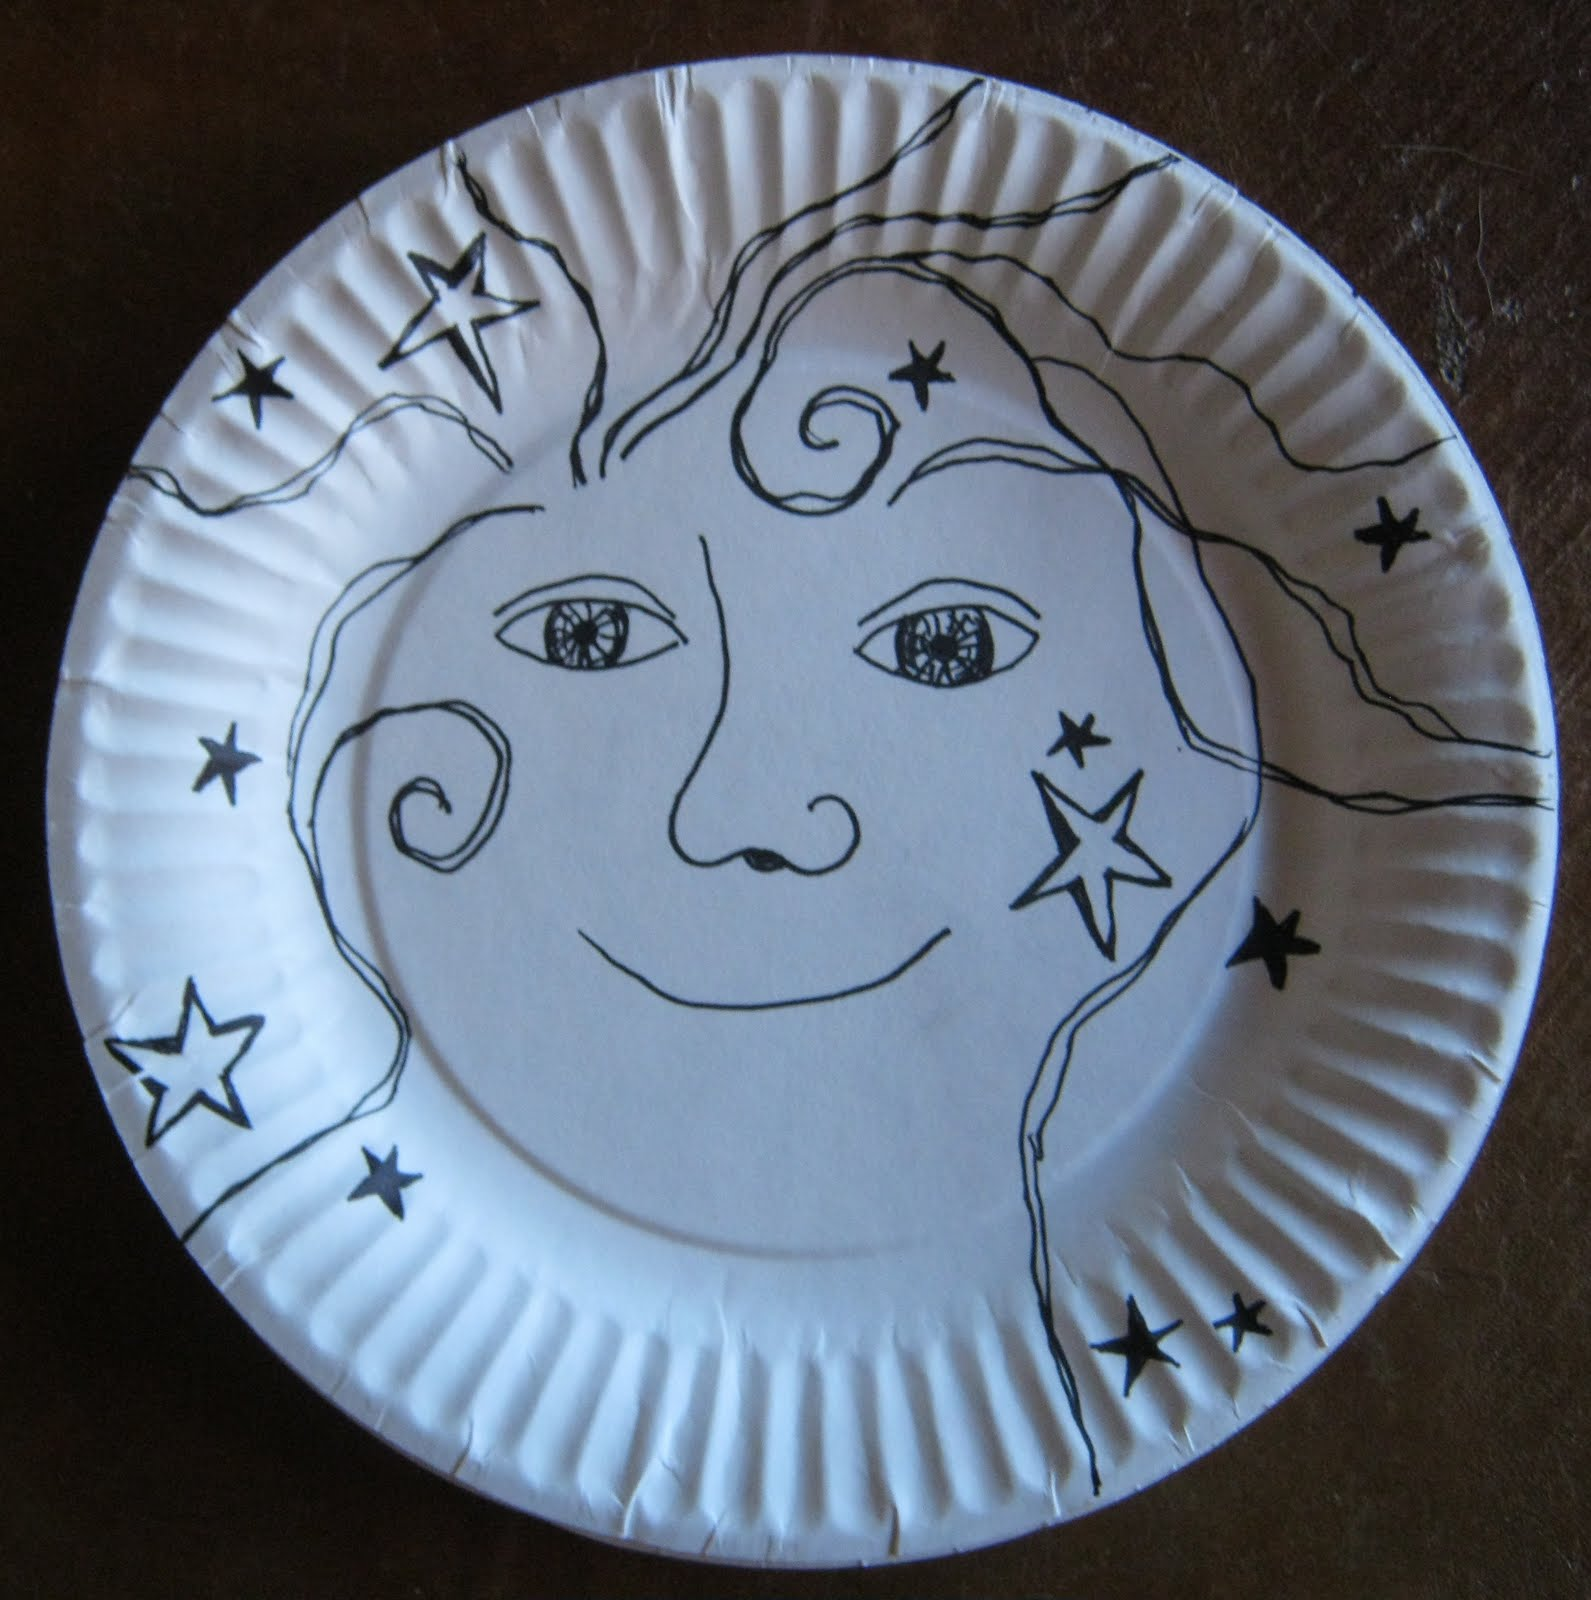 Day 184 Another paper plate drawing & recycle girl